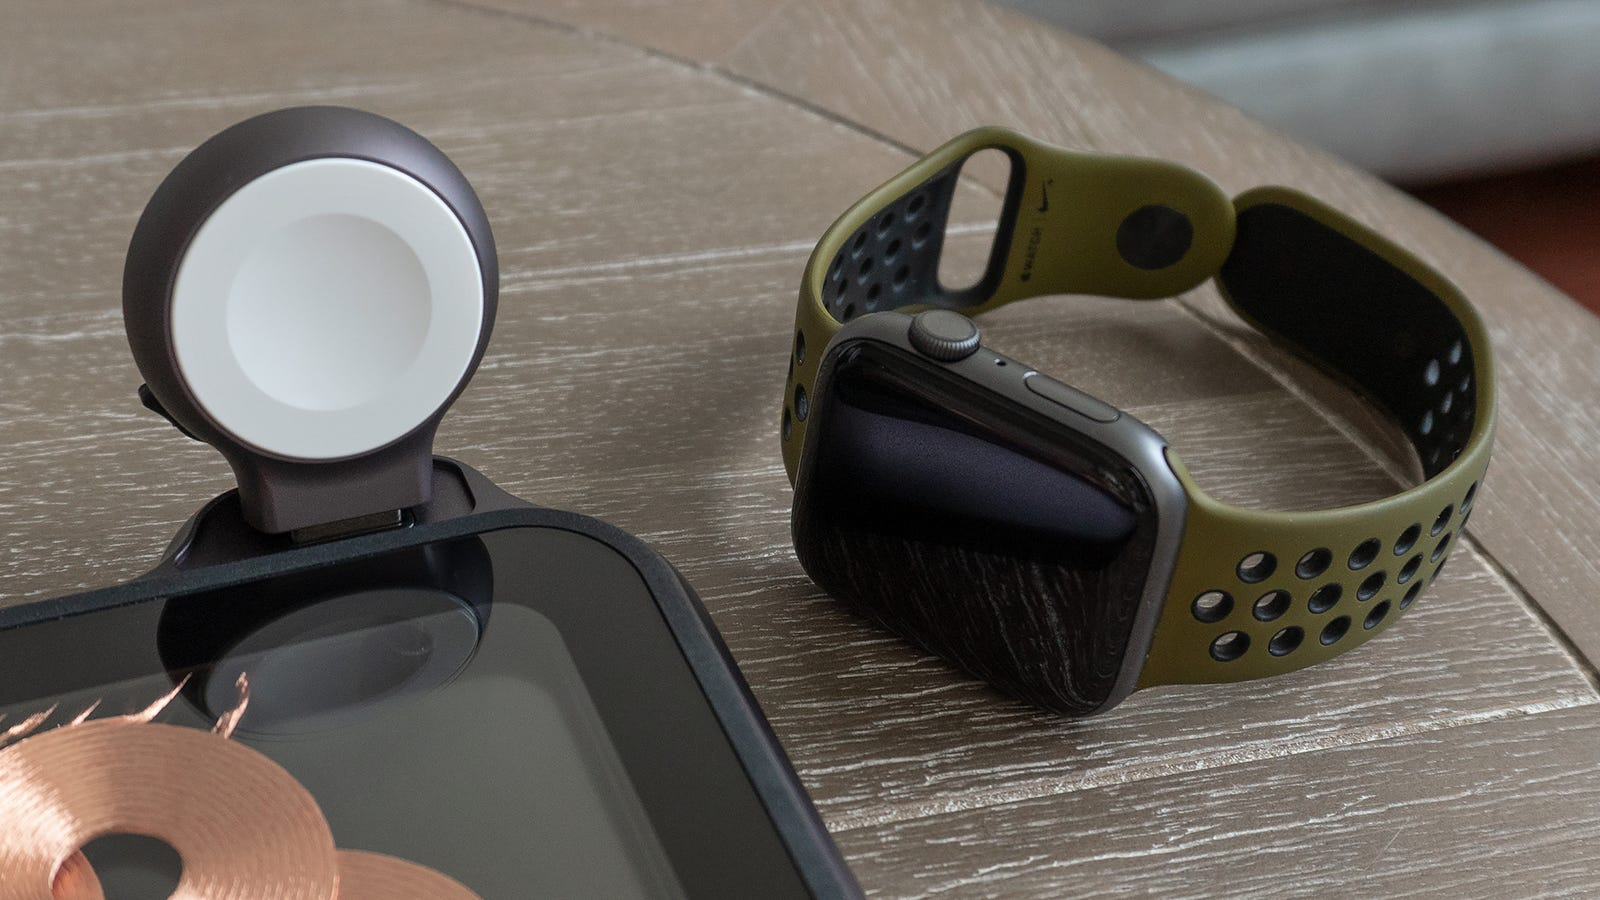 For an extra $50 Zens sells a solution to the Apple Watch's proprietary charger.